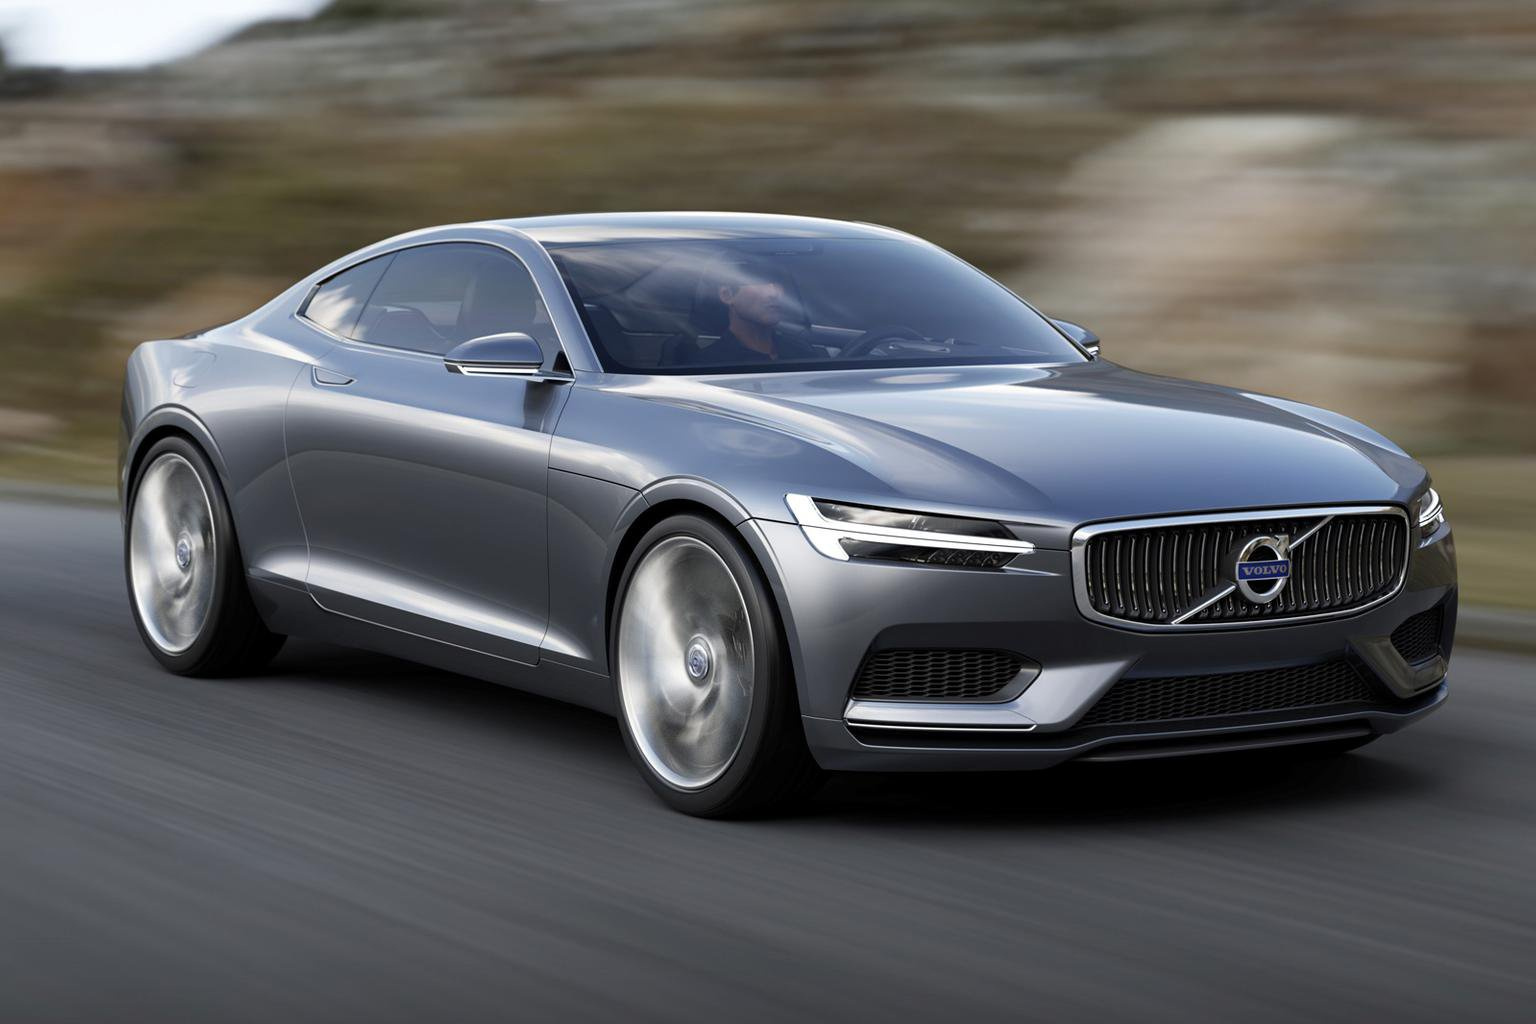 Volvo Concept Coupe revealed ahead of Frankfurt motor show